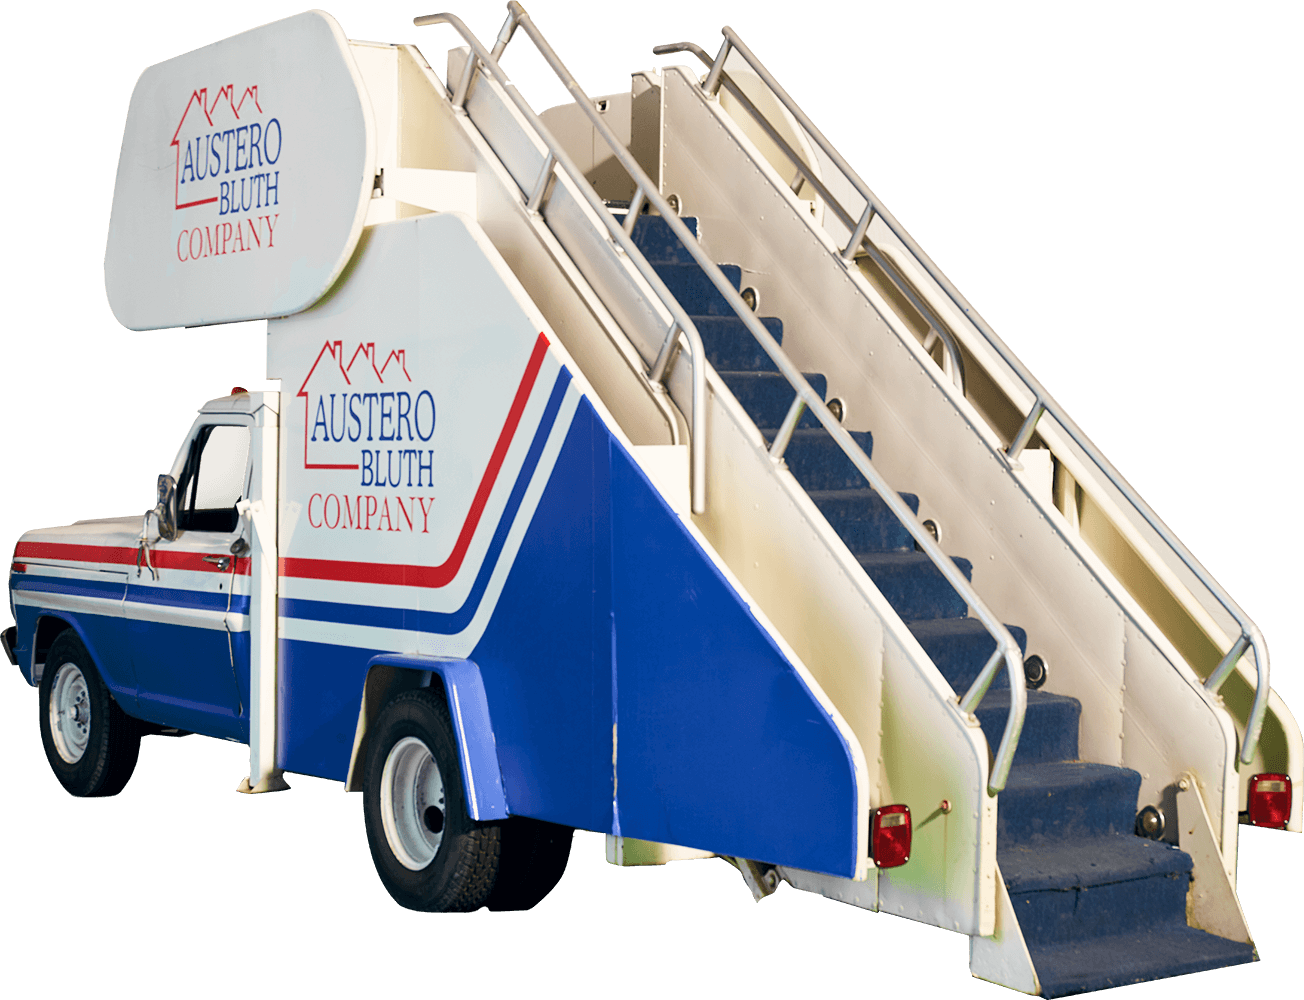 The Austero Bluth stair car